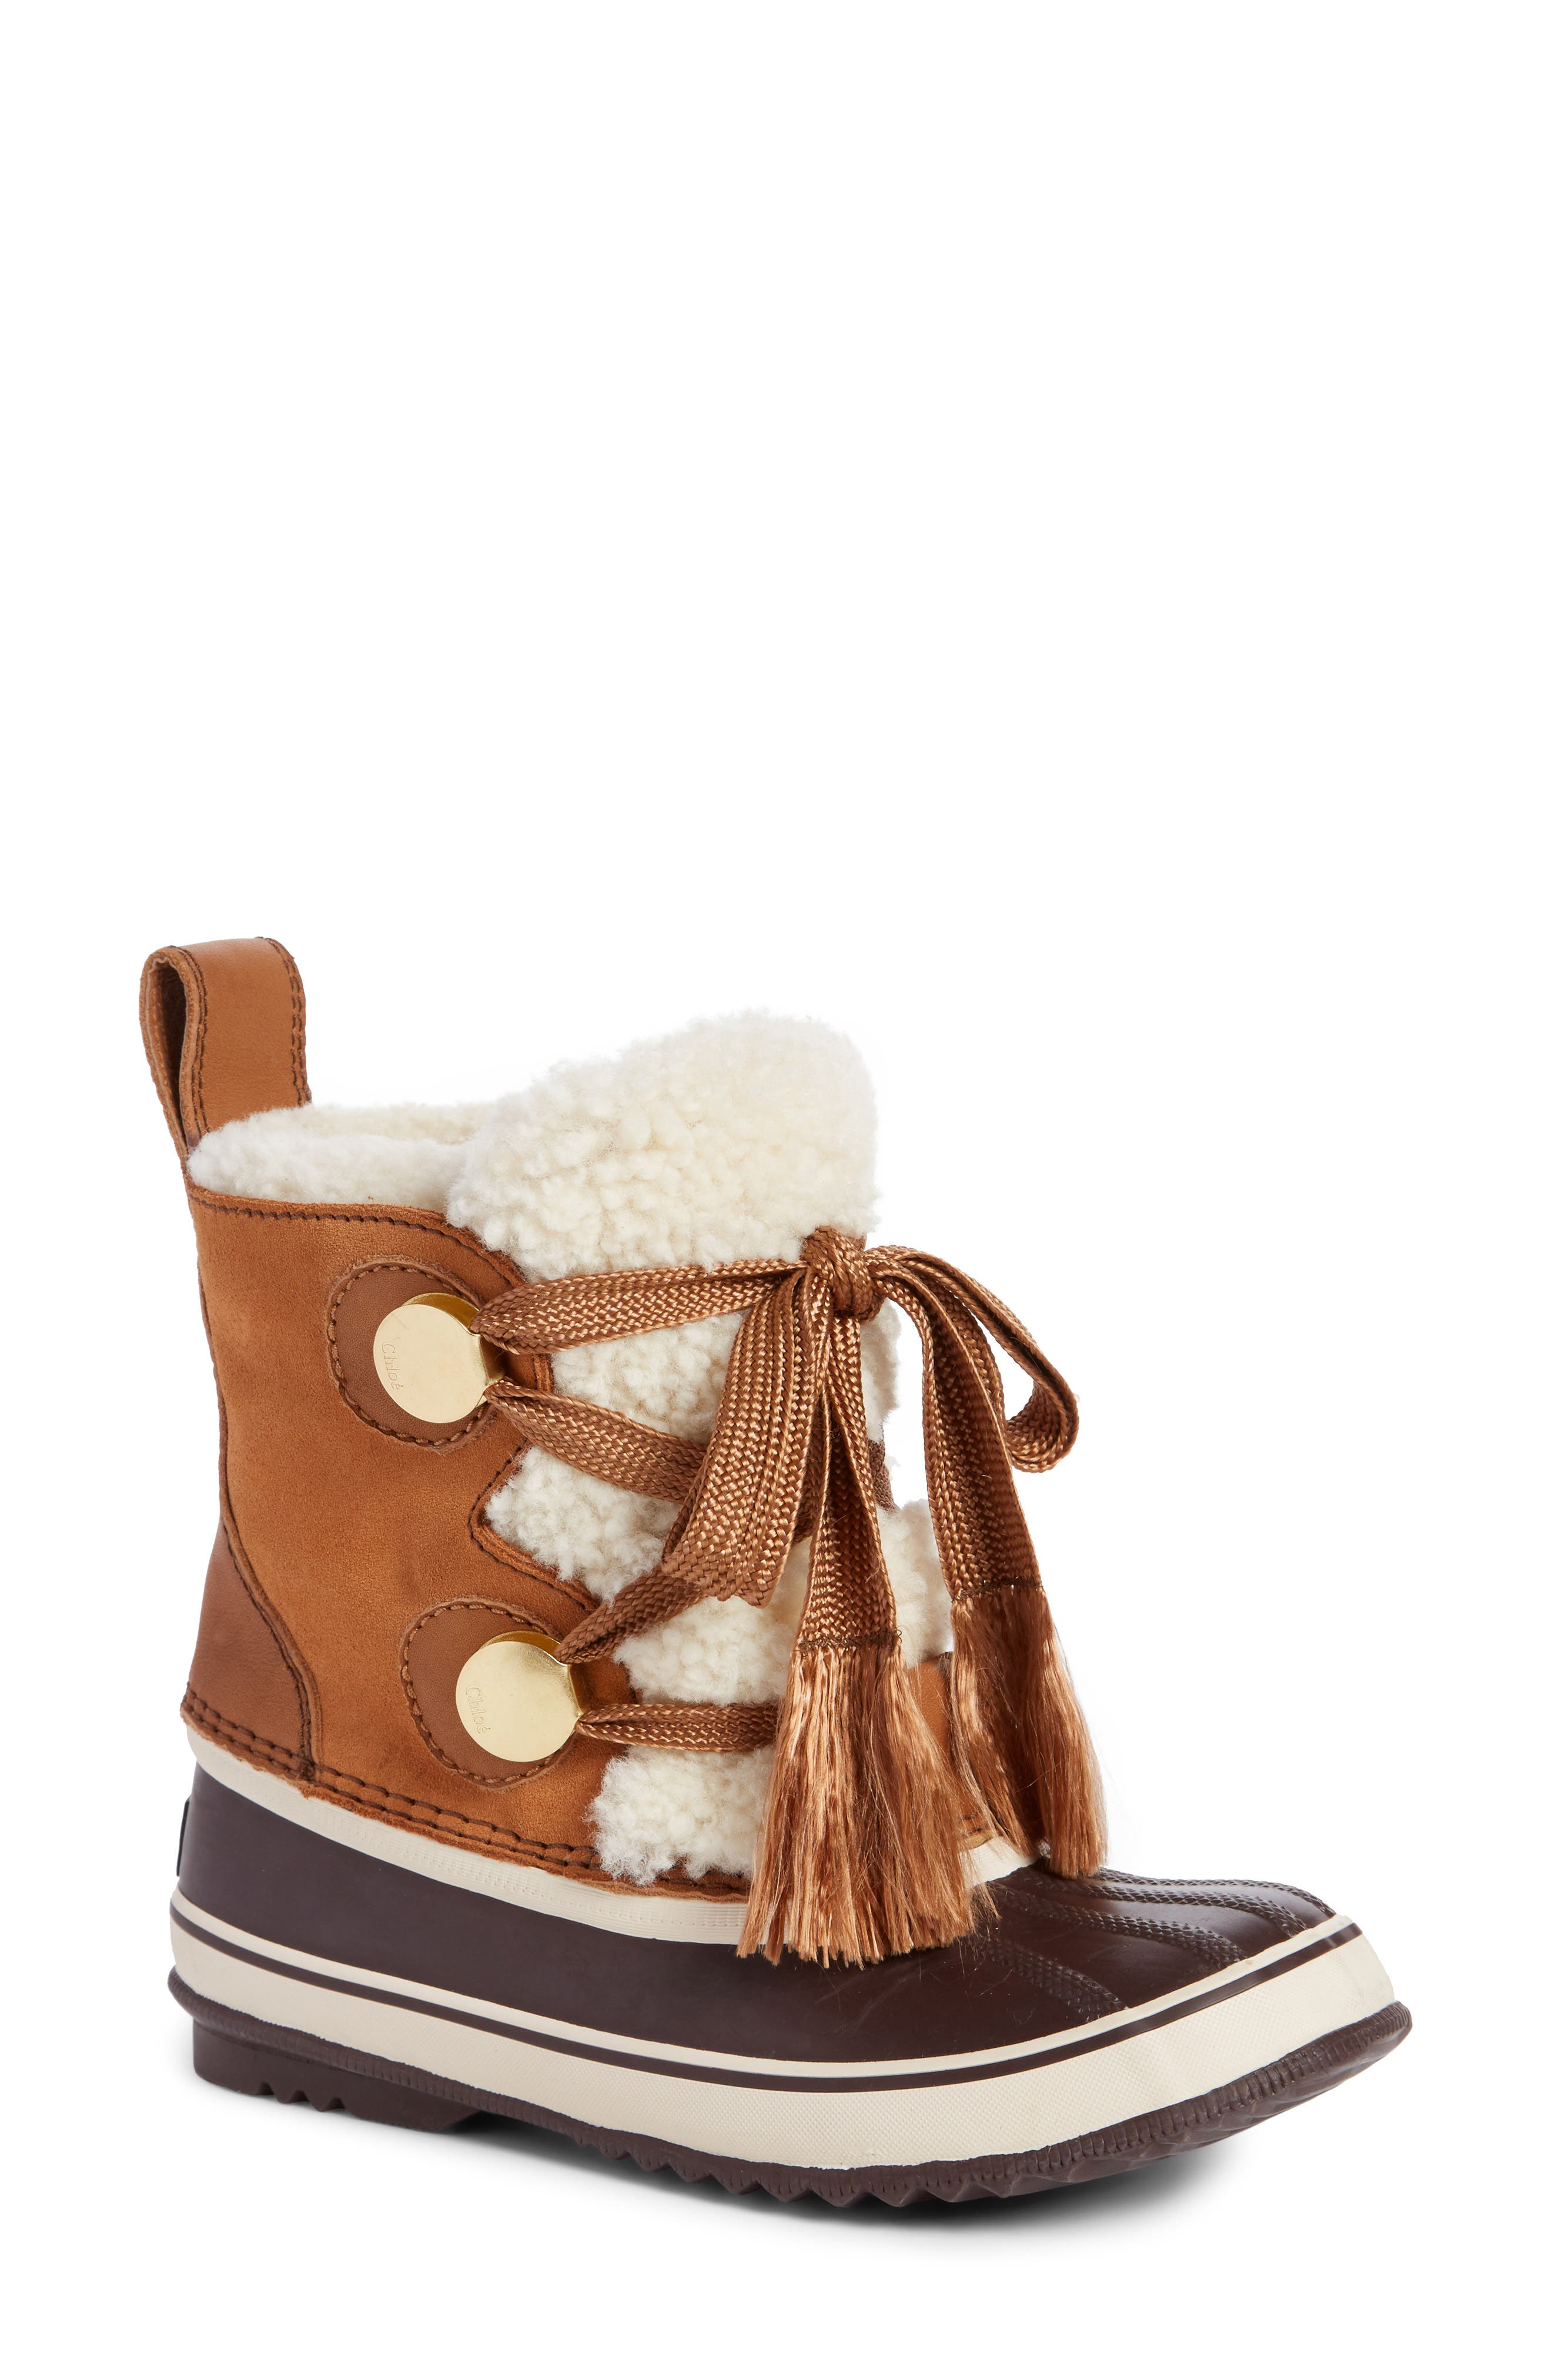 SOREL x Chloé Genuine Shearling Trim Waterproof Boot (Women)